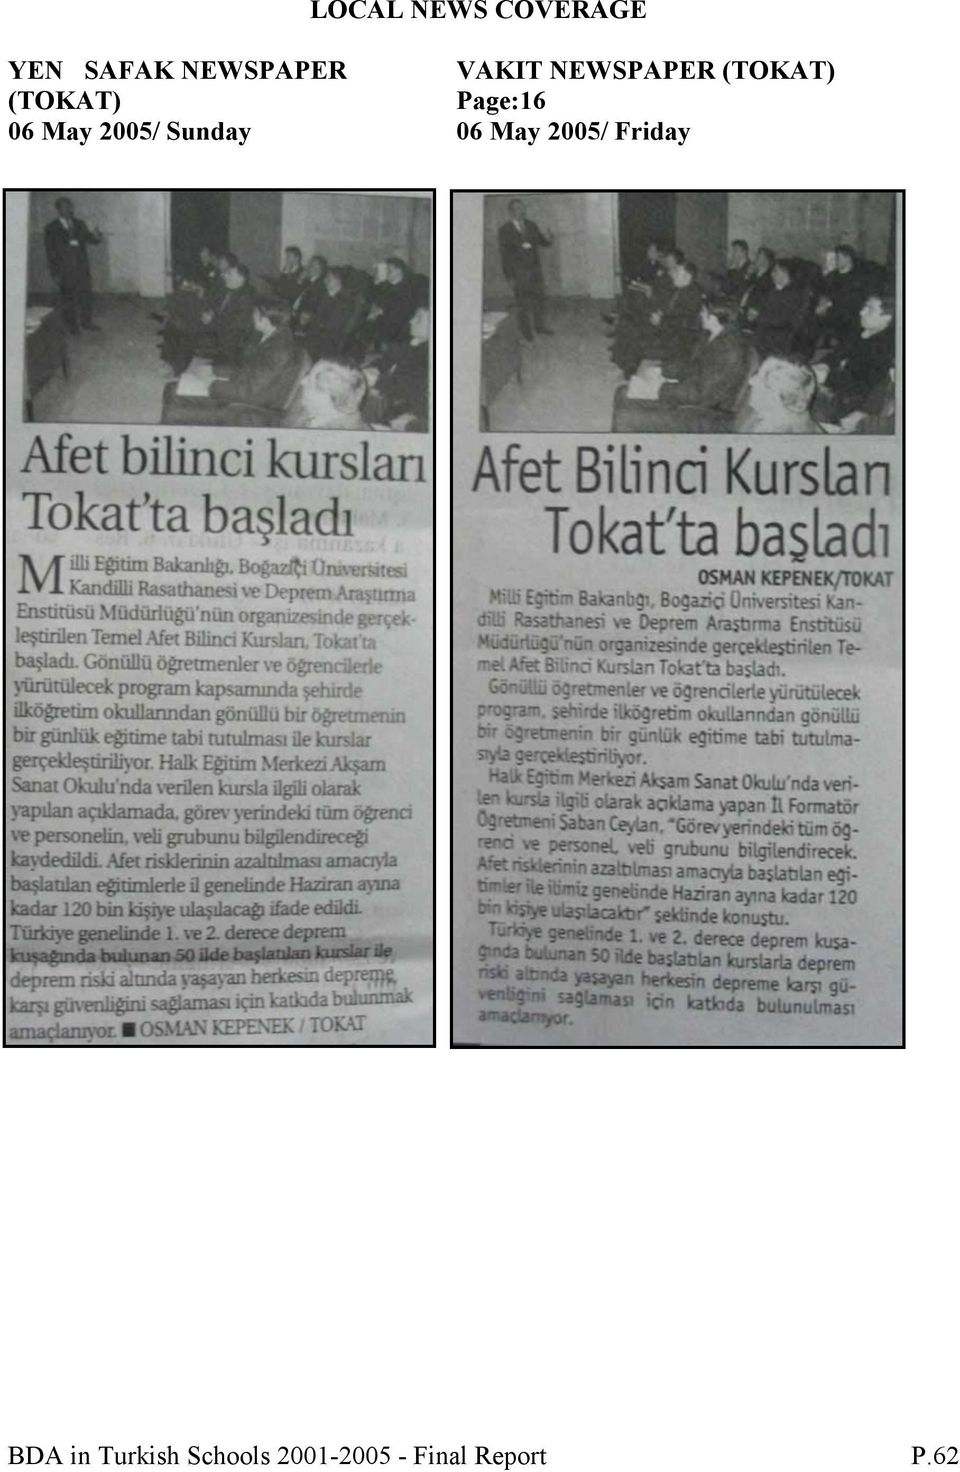 NEWSPAPER (TOKAT) Page:16 06 May 2005/